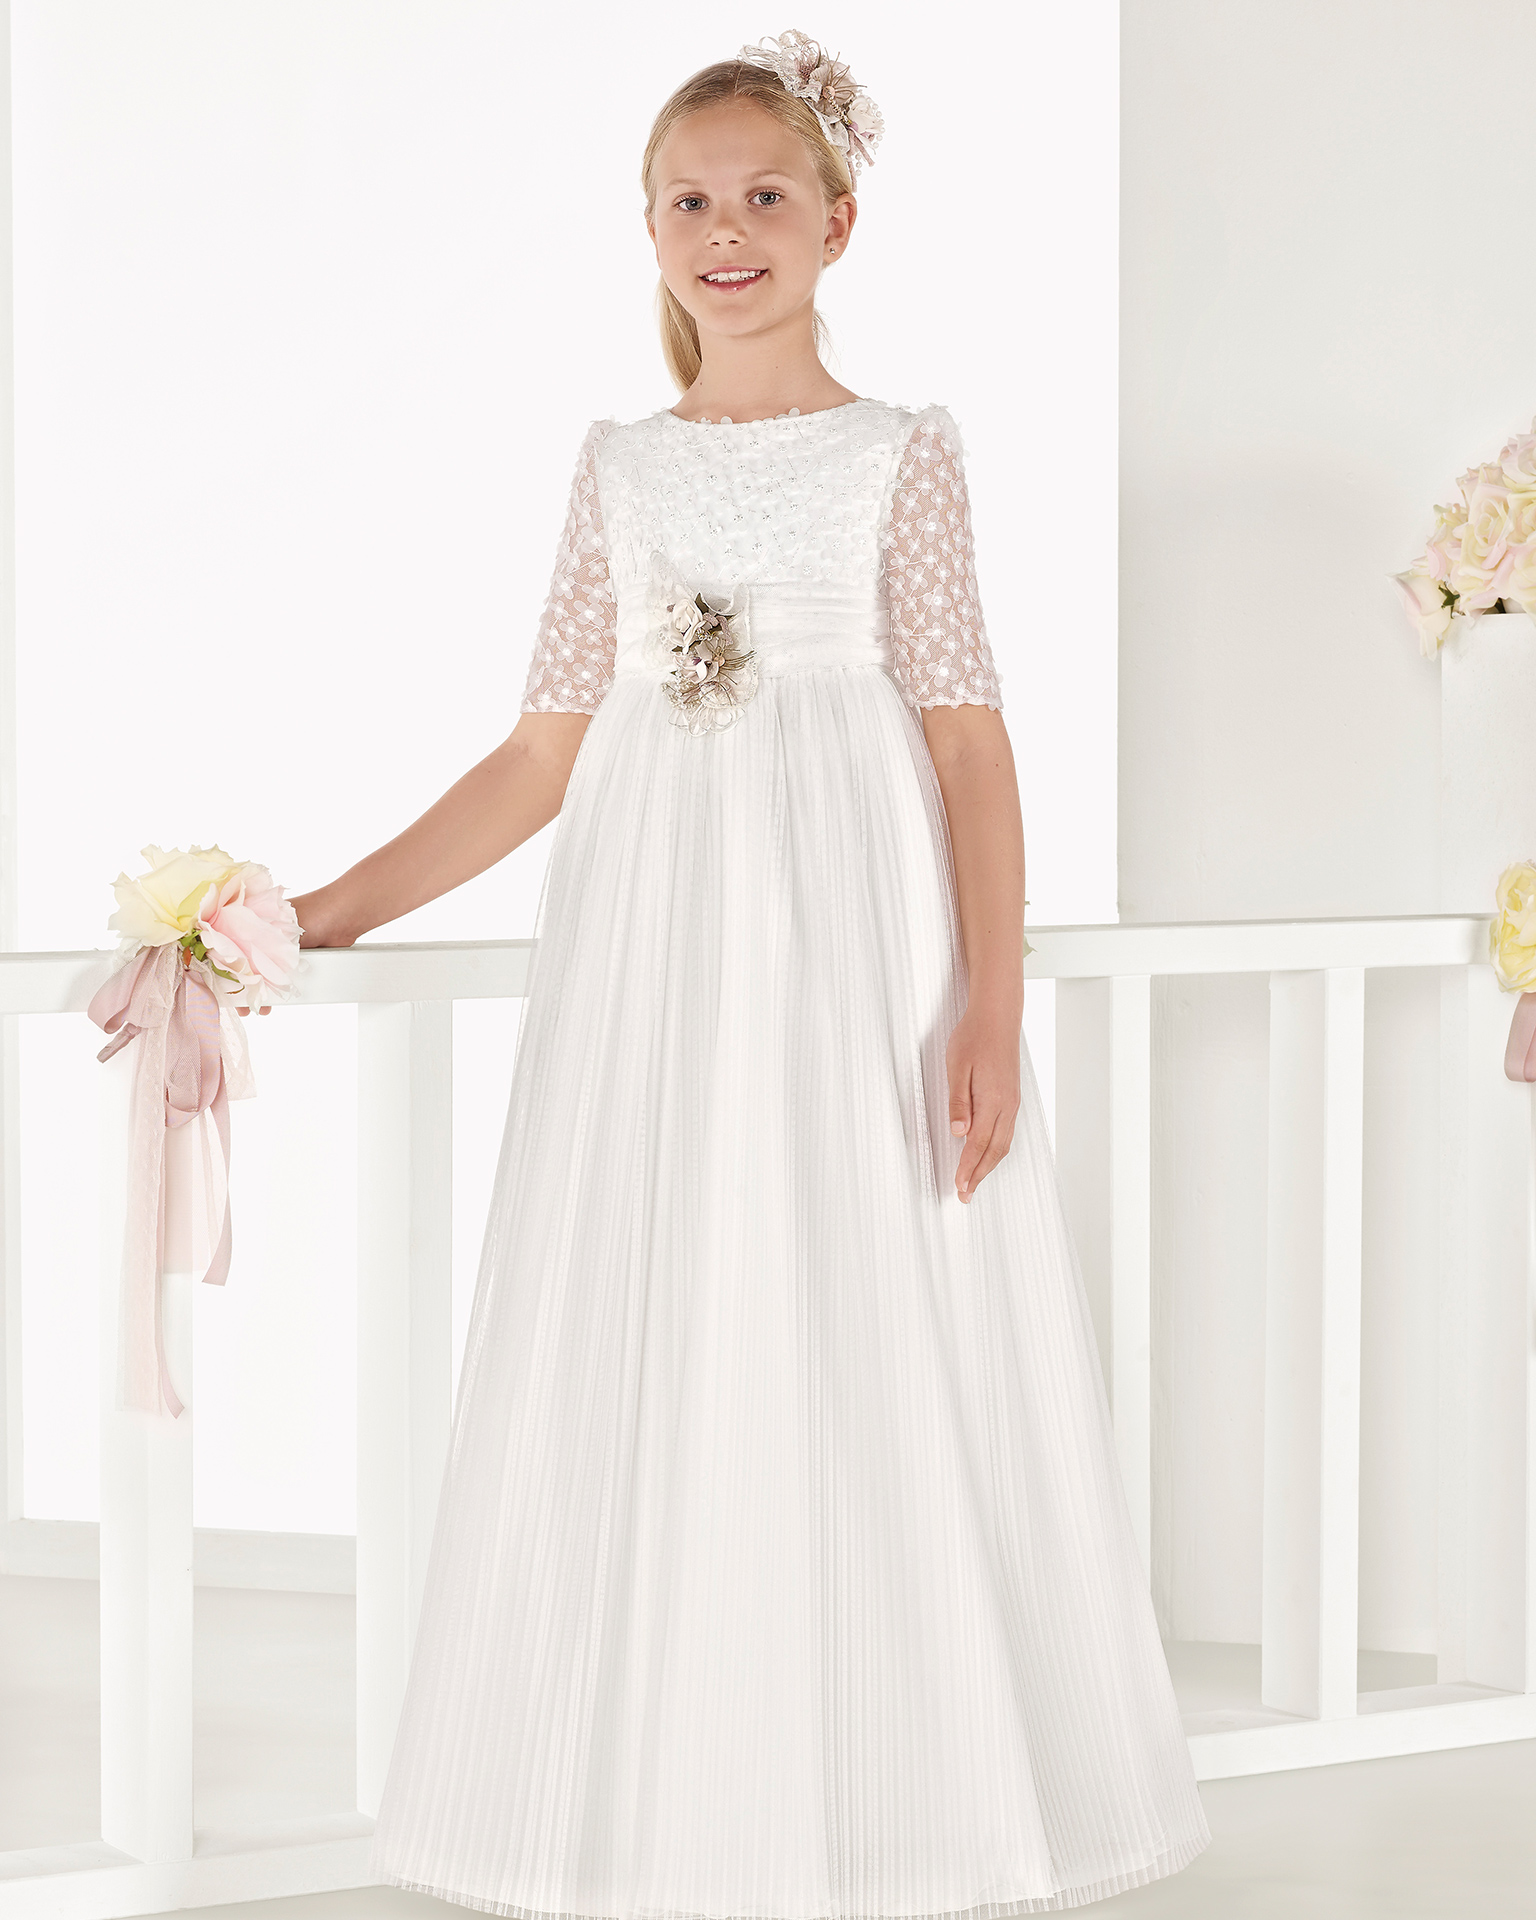 Princess-style pleated tulle First Communion or bridesmaid's dress with empire waist, in natural. 2018 AIRE COMUNION Collection.